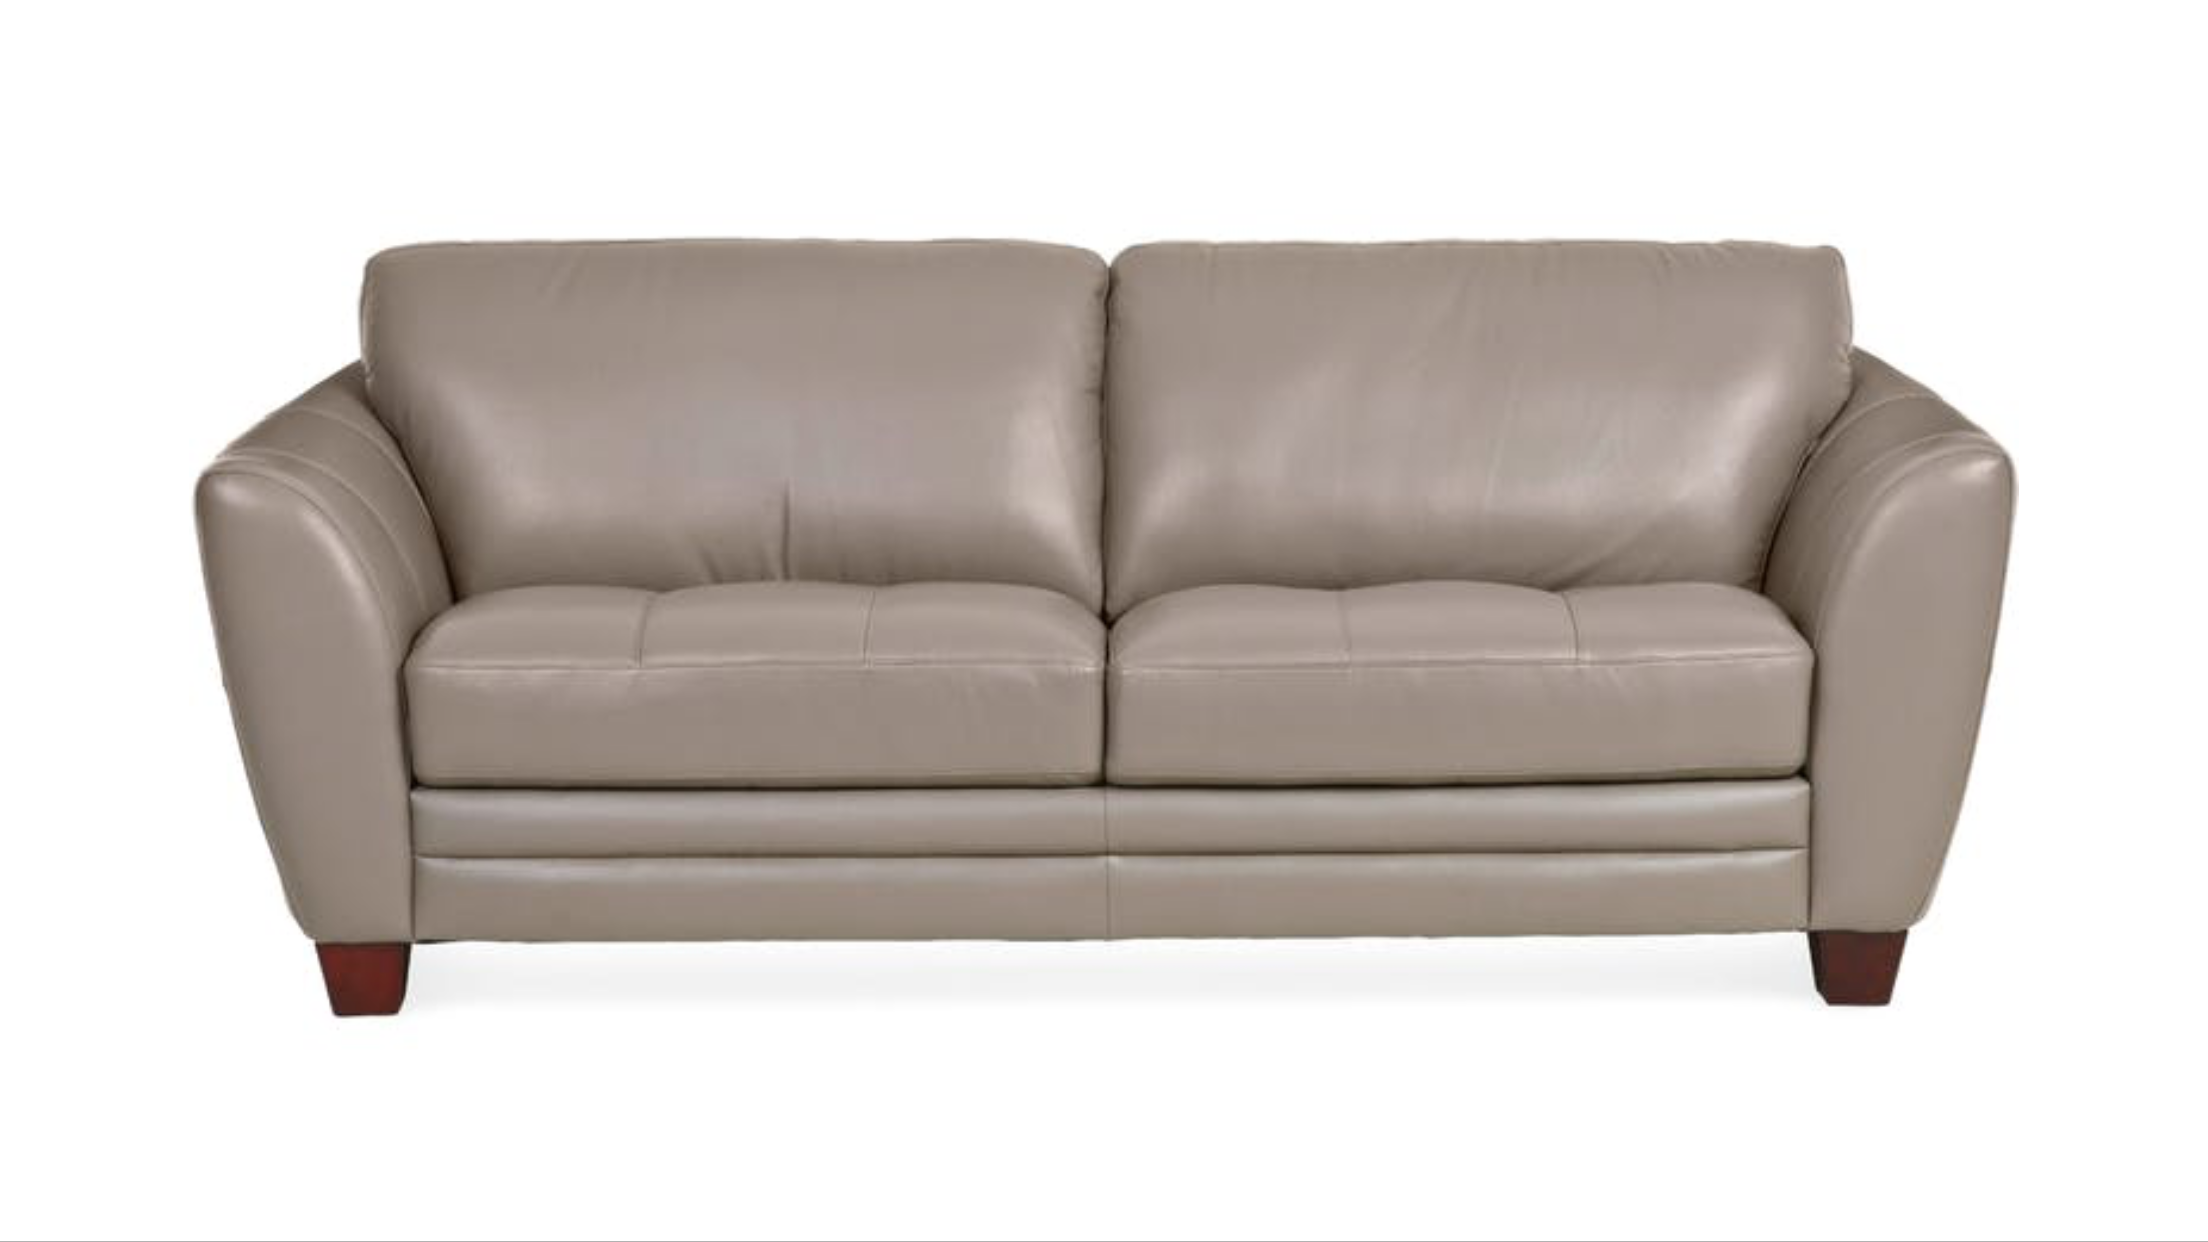 Exceptionnel Shop For Bermuda Leather Sofa, And Other Living Room Two Cushion Sofas At  Star Furniture TX.